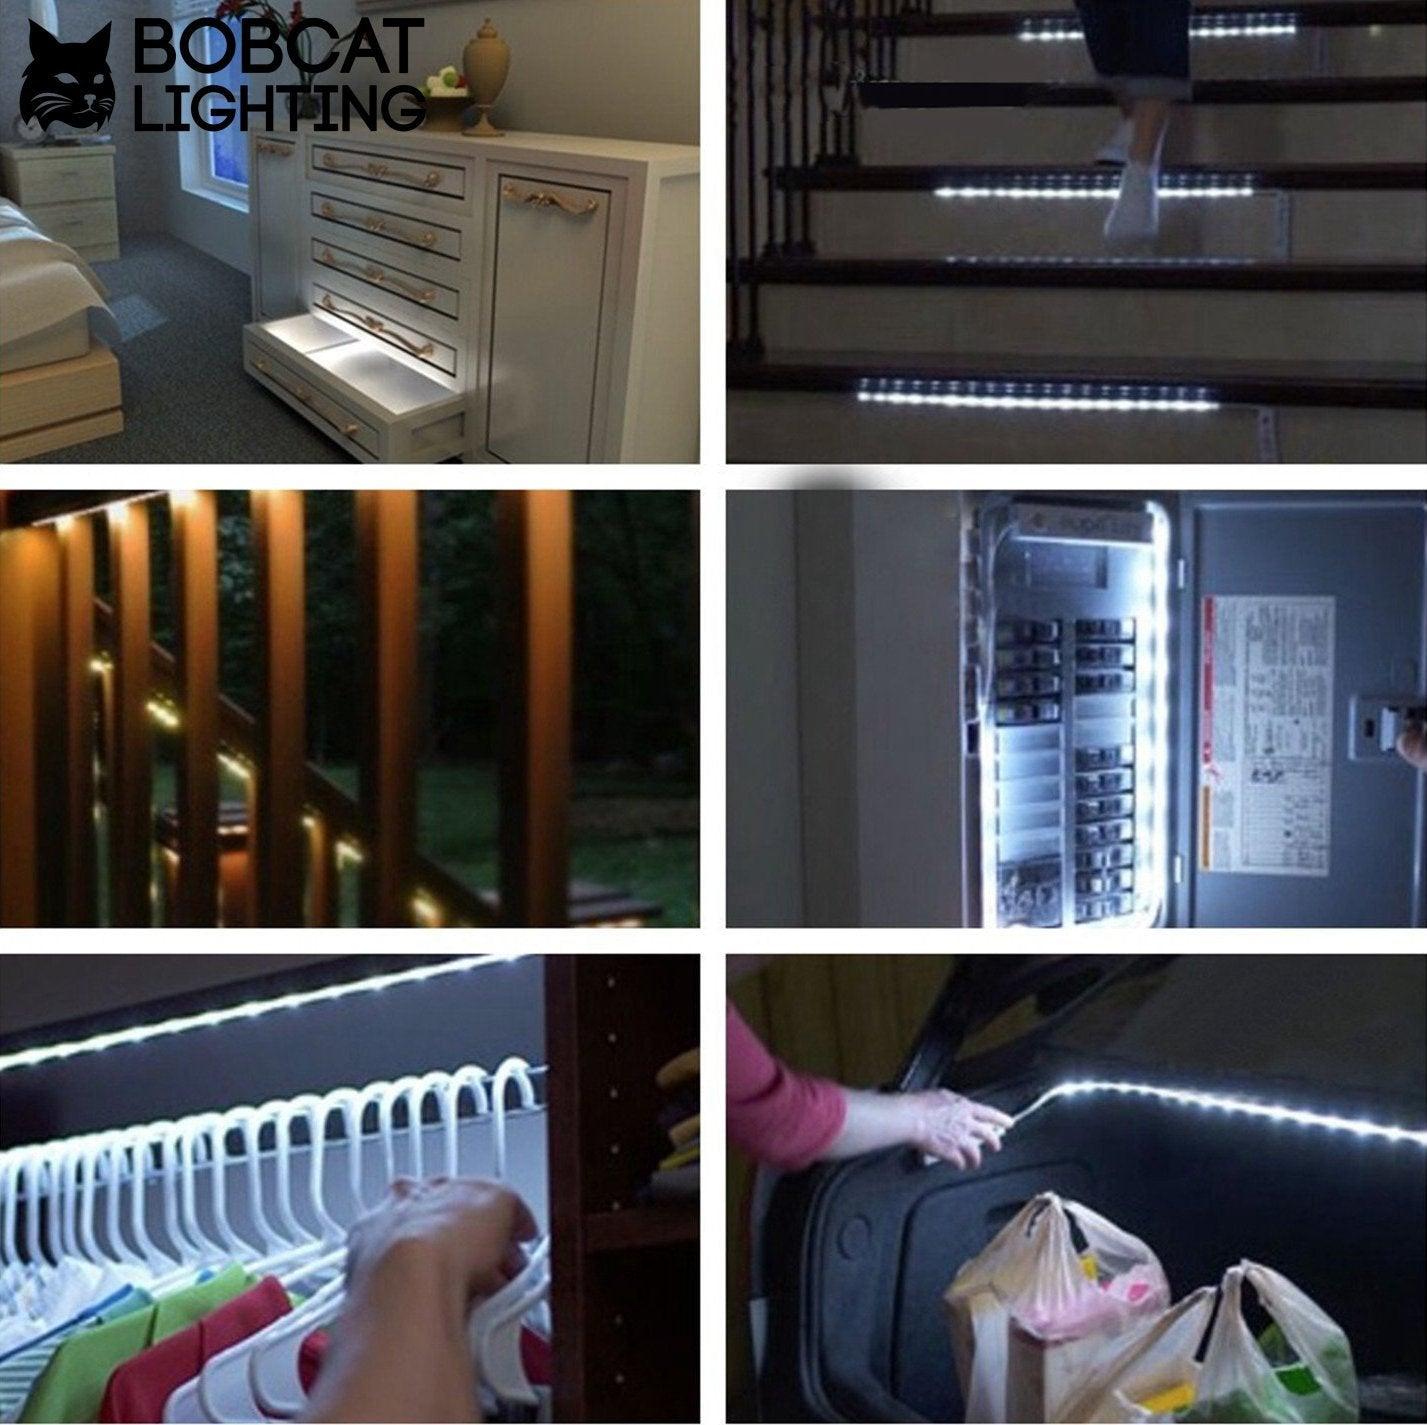 ... Motion Activated LED Strip Lighting For Closet Or Under Cabinet    Battery Powered Motion Sensing Stick ...